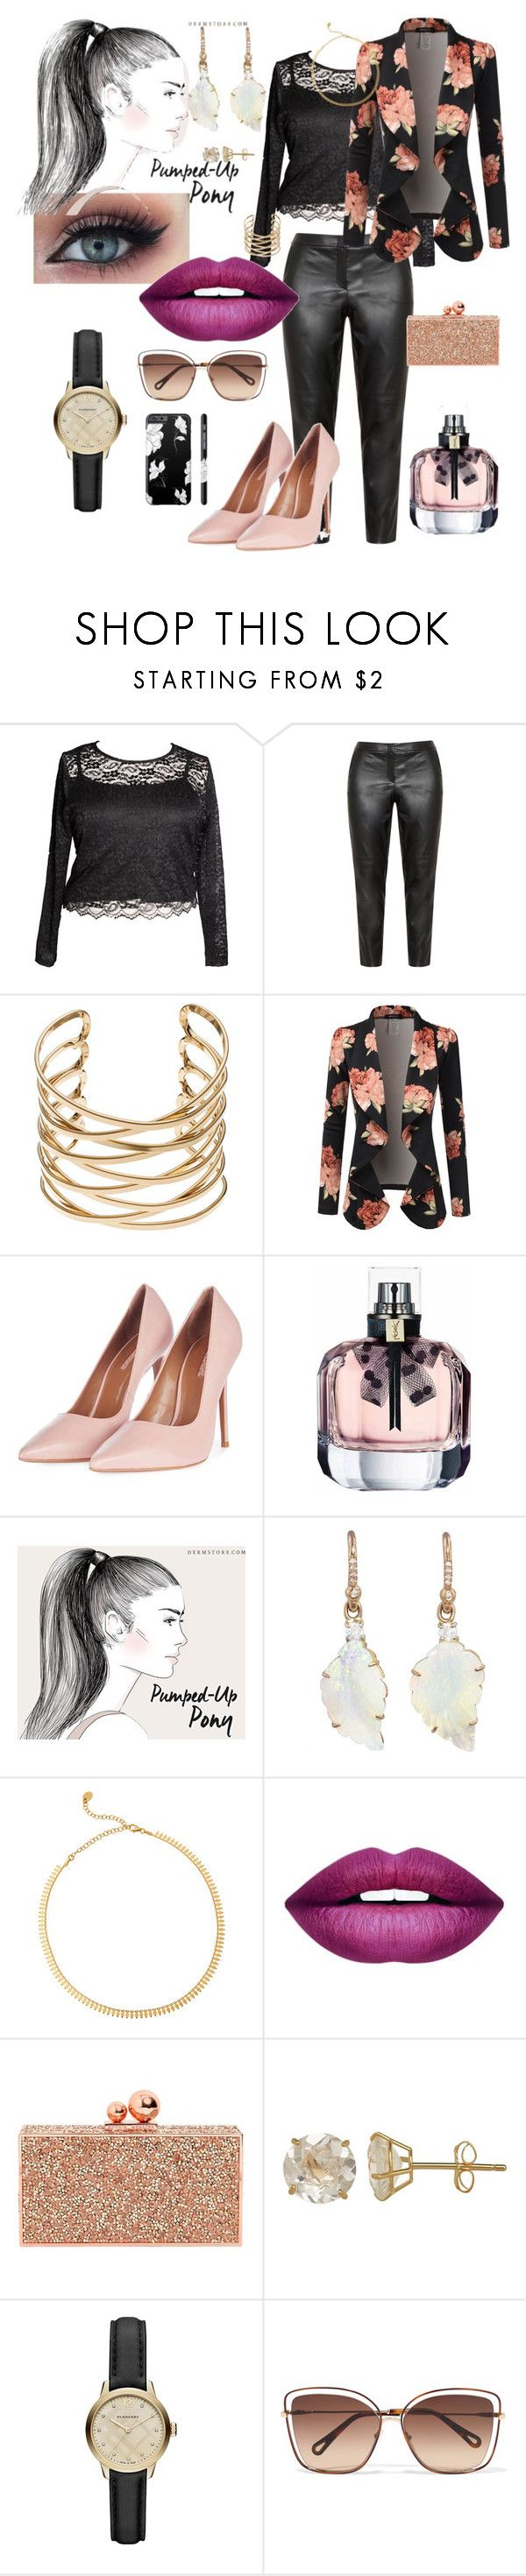 """""""Power Plus"""" by joy-chiquita-godboldo ❤ liked on Polyvore featuring Samoon, Doublju, Topshop, Irene Neuwirth, Argento Vivo, Forever 21, Sophia Webster, Everlasting Gold, Burberry and Chloé"""